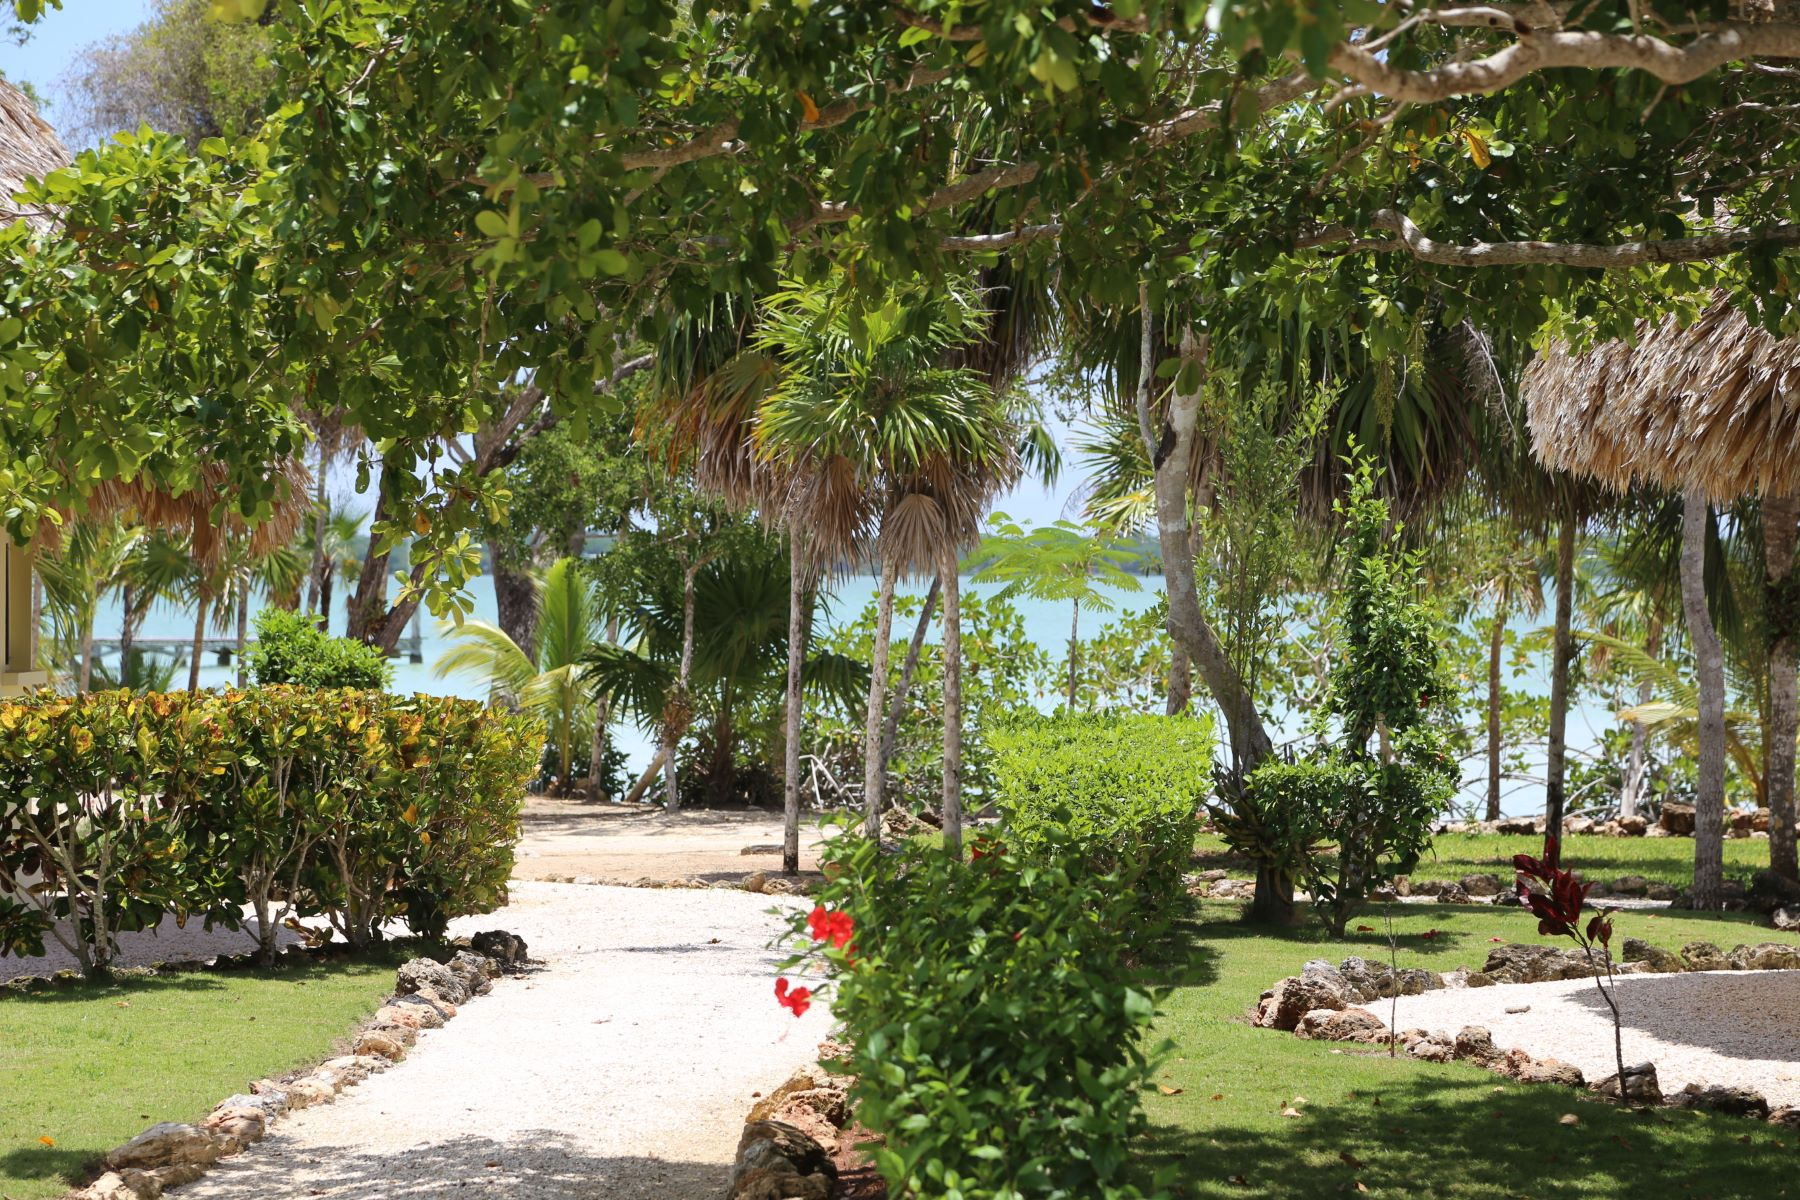 Land for Sale at Pescadores Park at Orchid Bay Corozal, Corozal, Belize